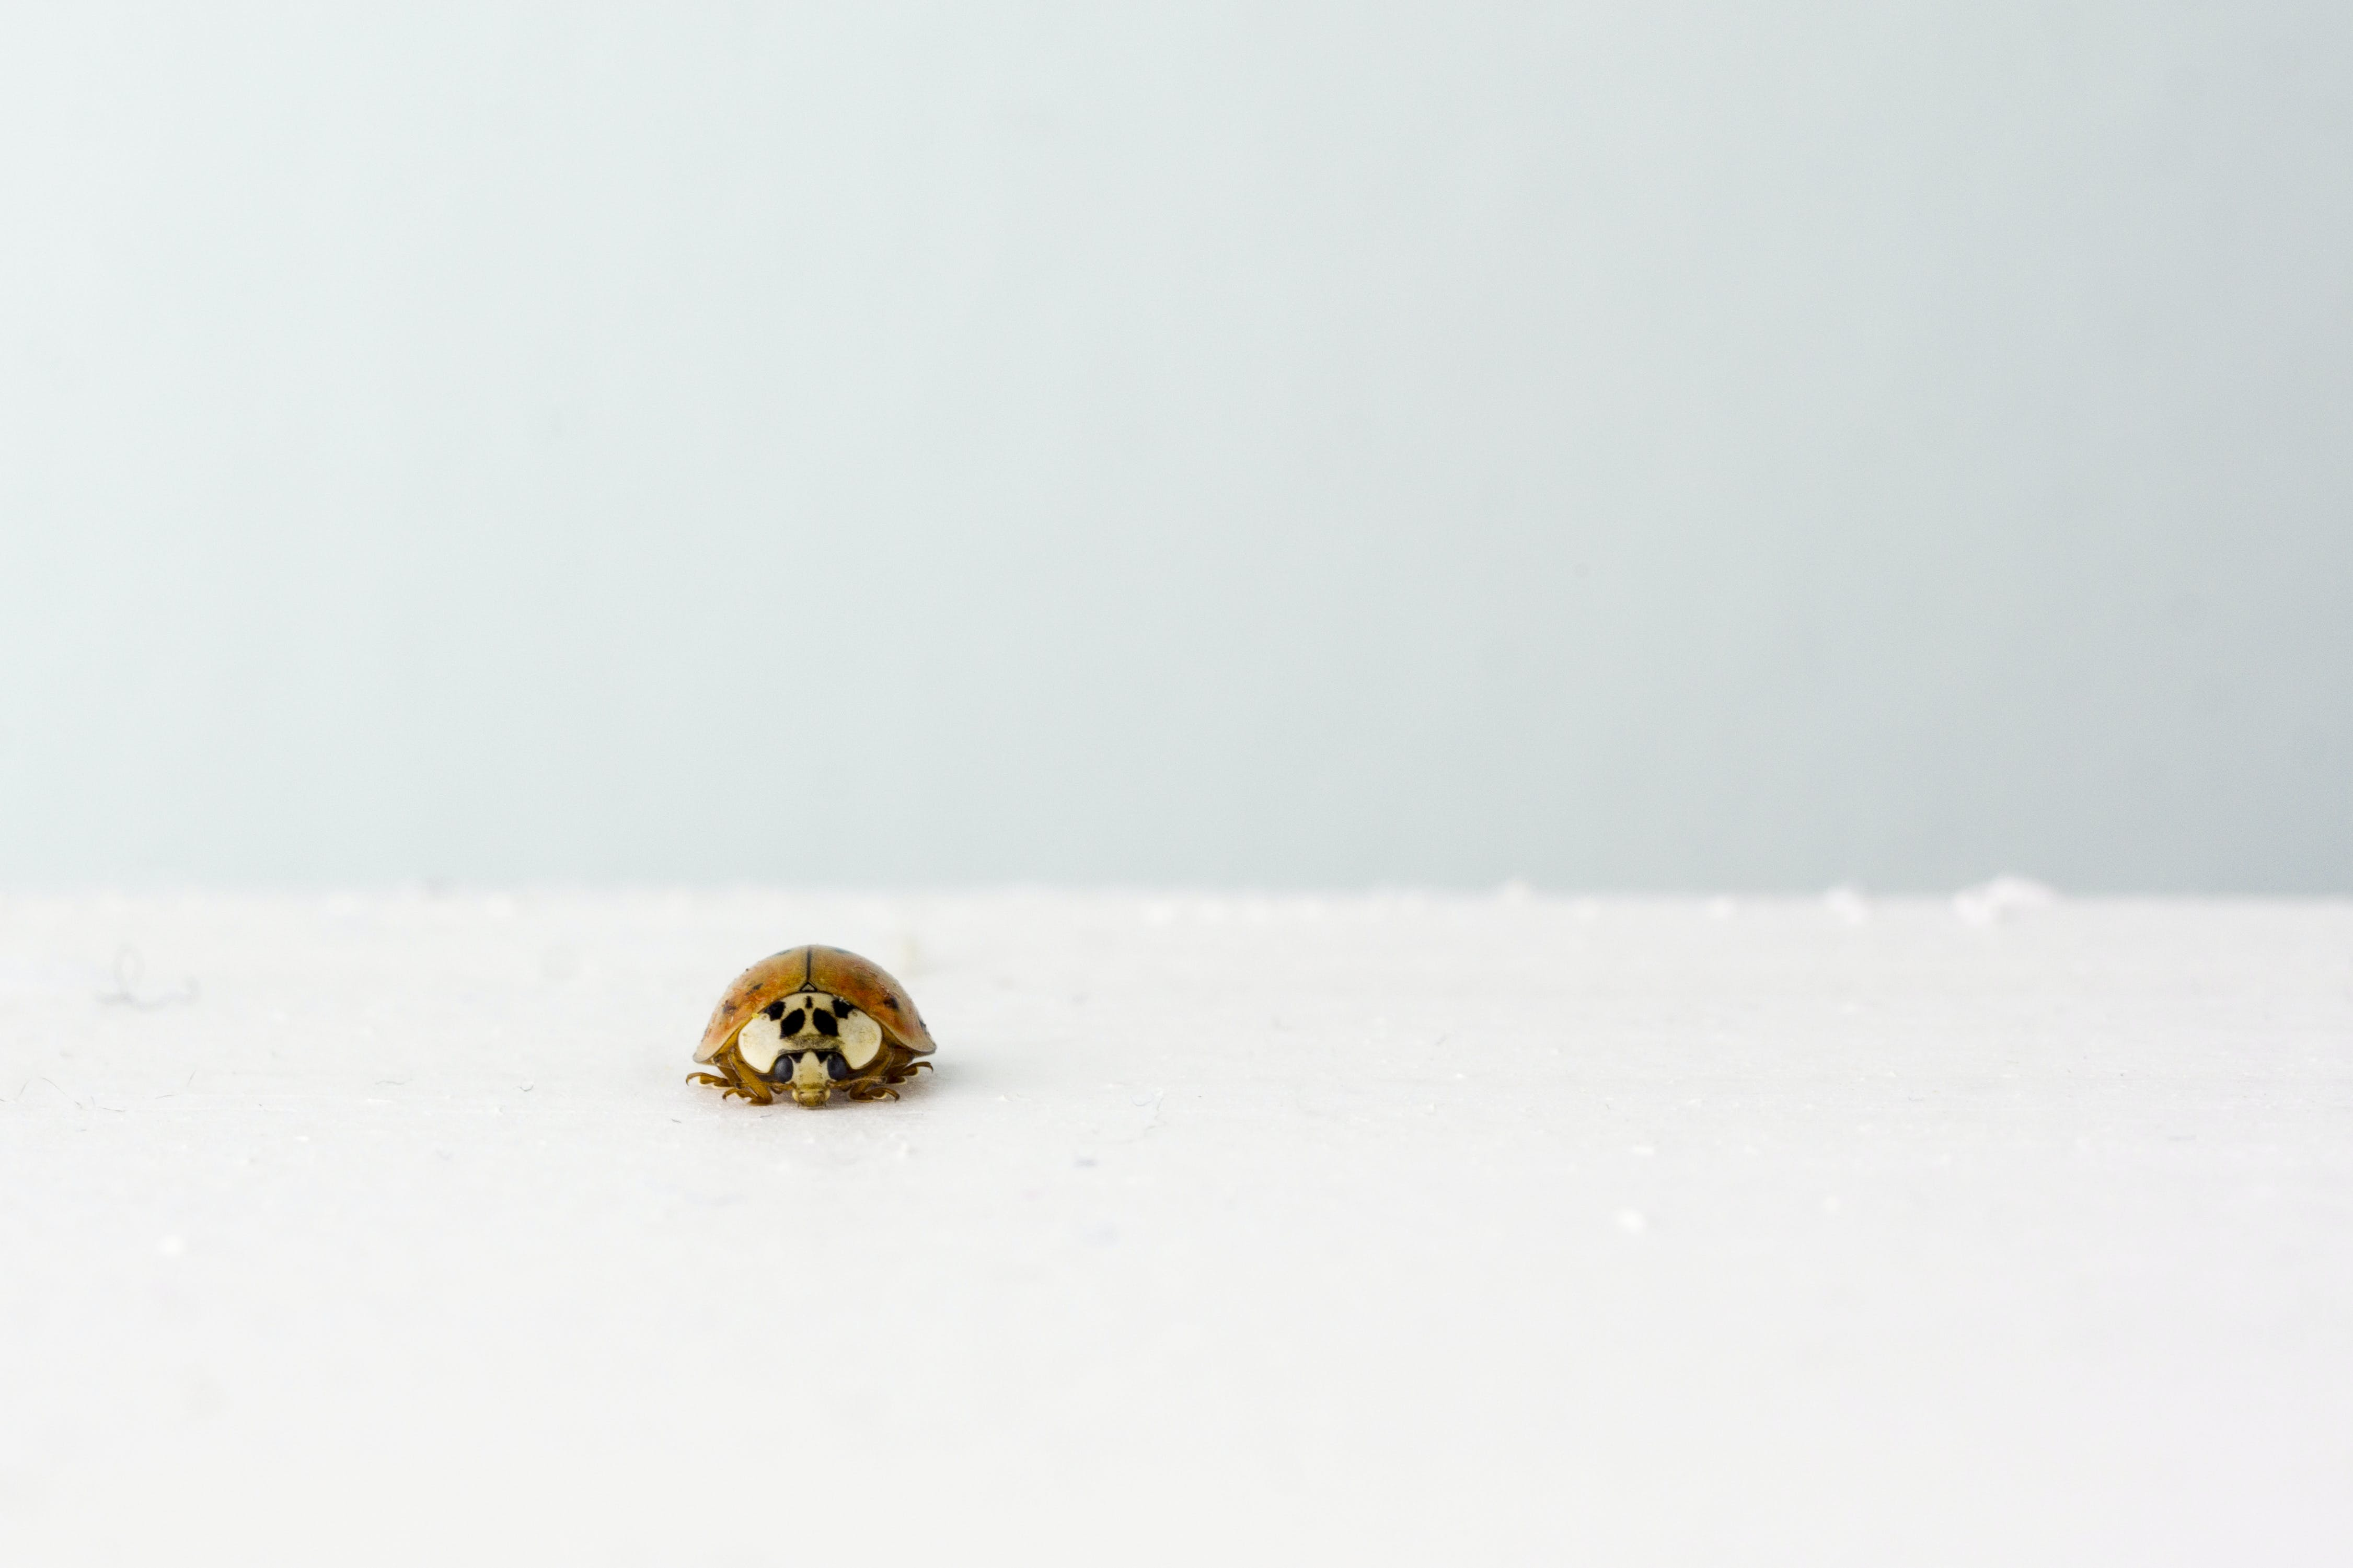 Brown Ladybug on White Surface